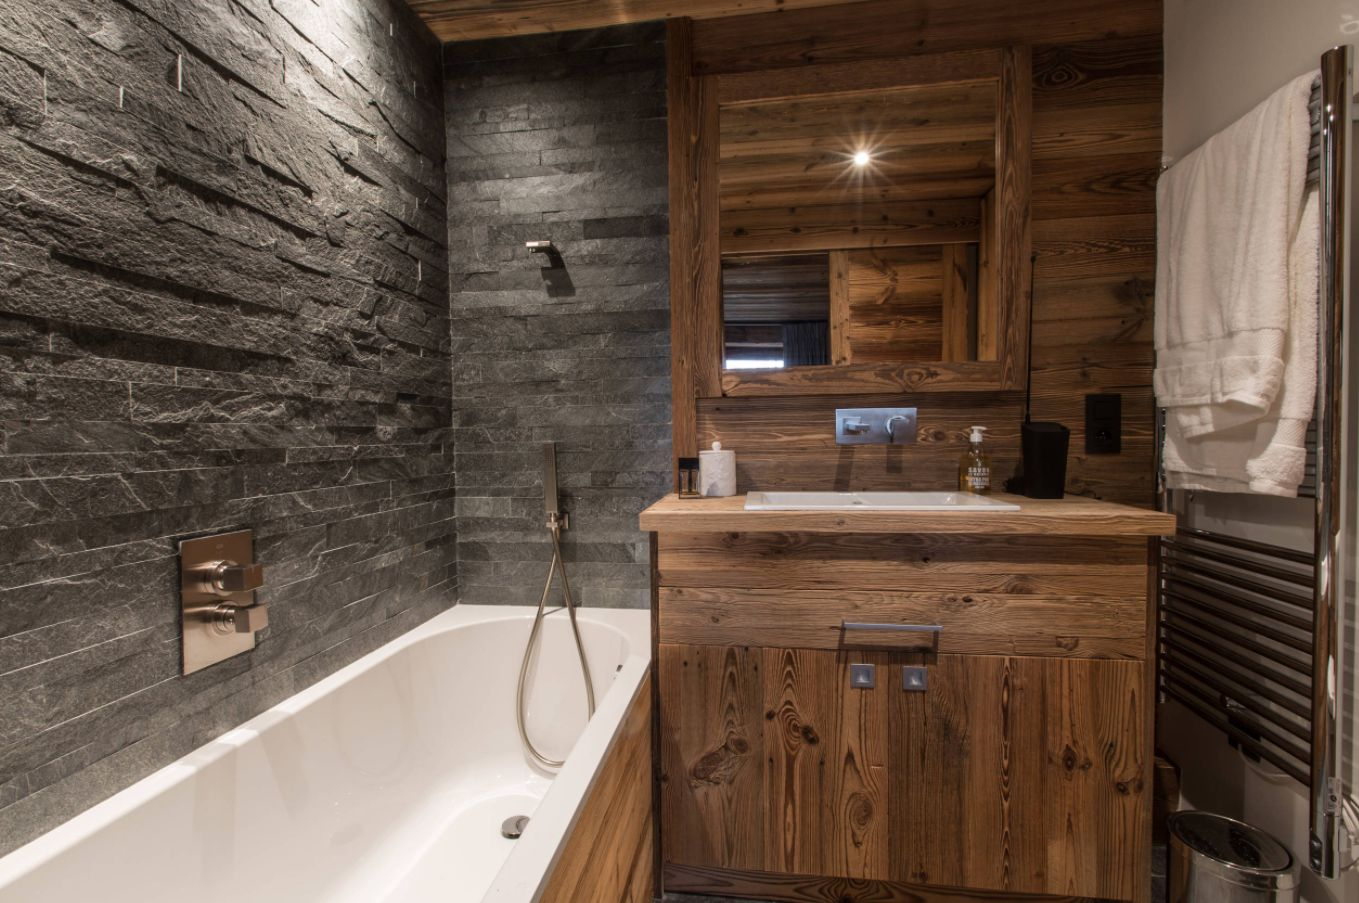 view in gallery - Rustic Bathroom